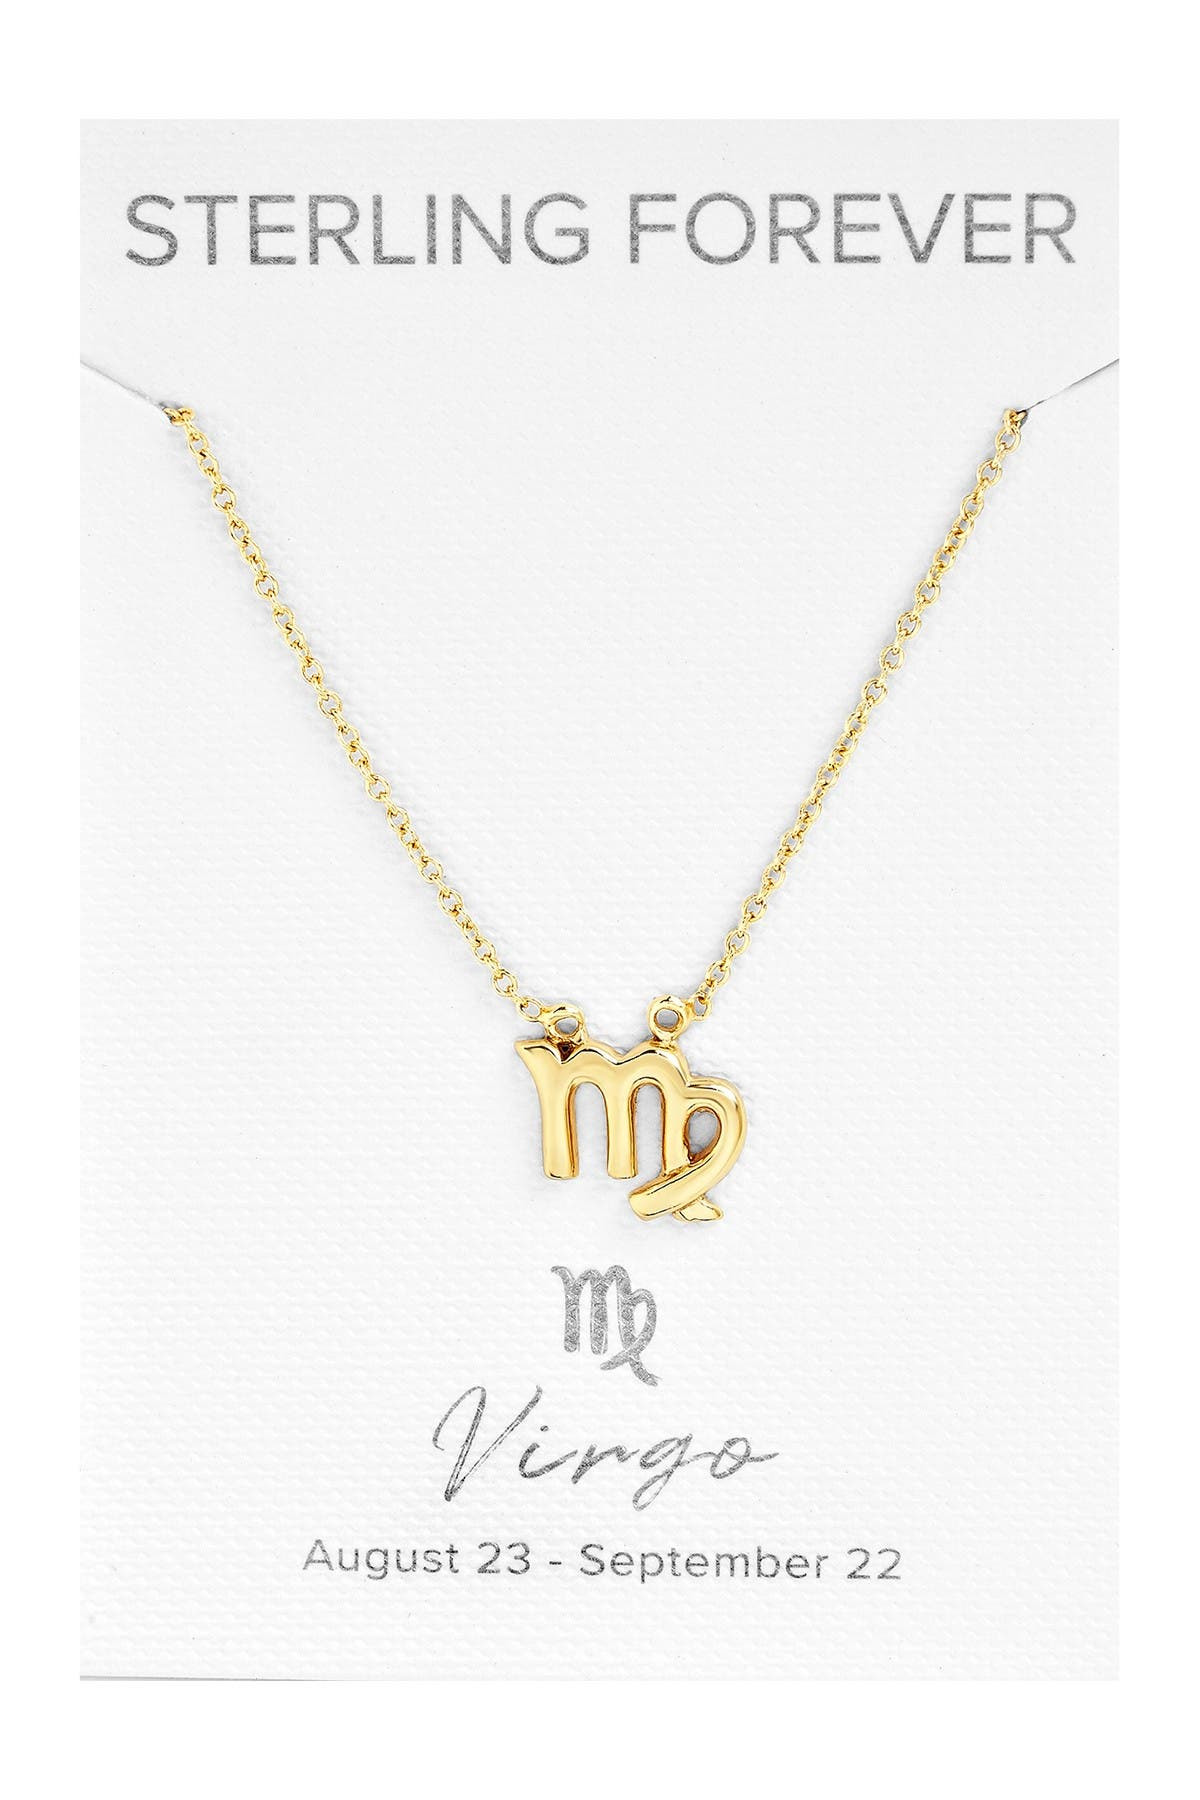 Image of Sterling Forever 14K Yellow Gold Plated Zodiac Pendant Necklace - Virgo